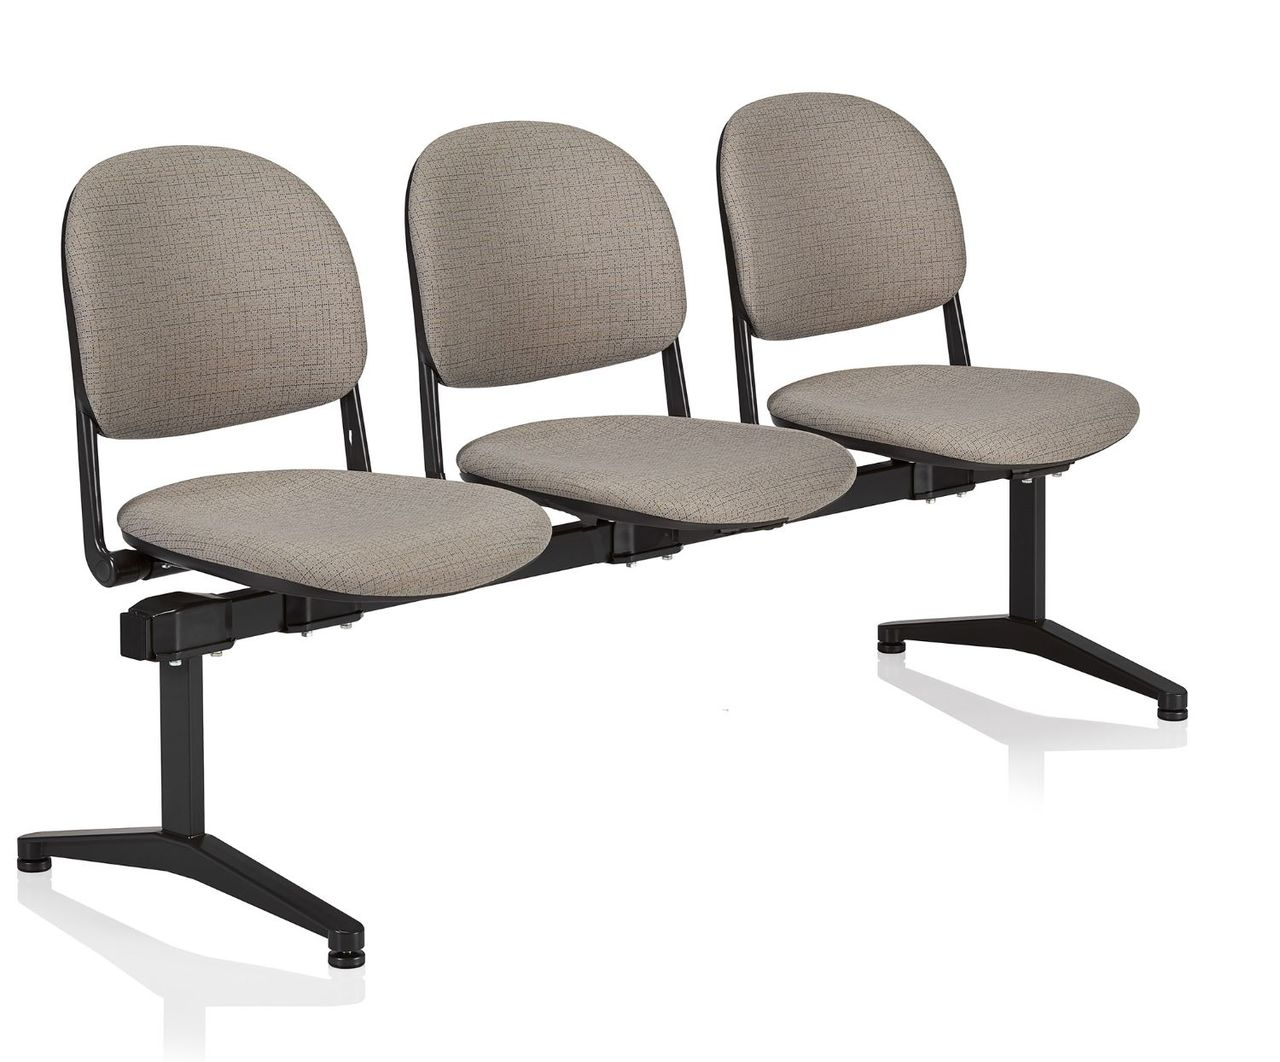 ki torsion tandem seating 3 person beam chair